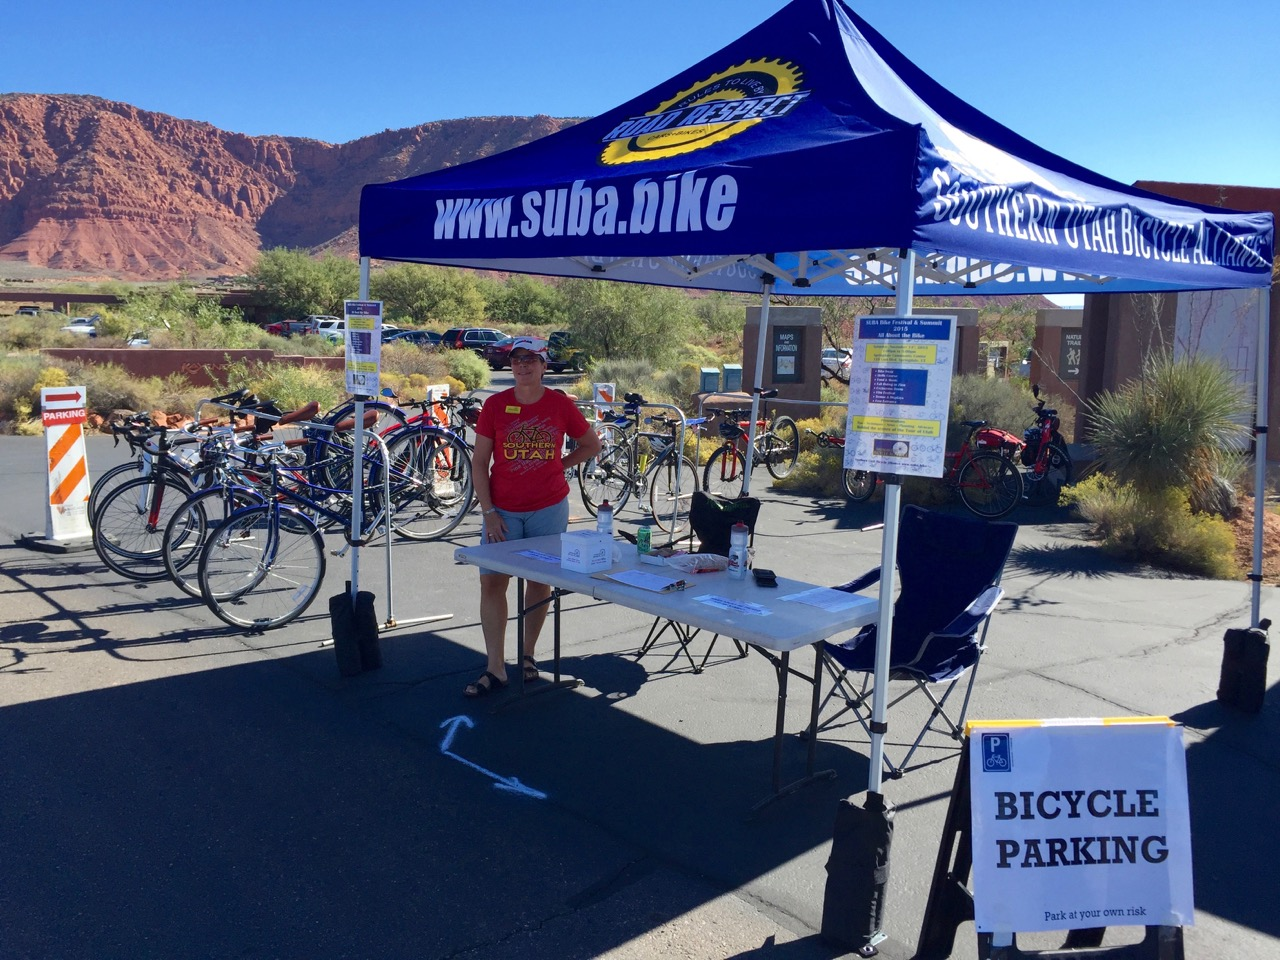 This photo from previous years shows the Southern Utah Bicycle Alliance bike valet. The valet will be ready at the Tour of Utah start, Zion Canyon Village, to keep spectator bikes safe. Springdale, Utah, date not specified. | Photo by Craig Shanklin, St. George News